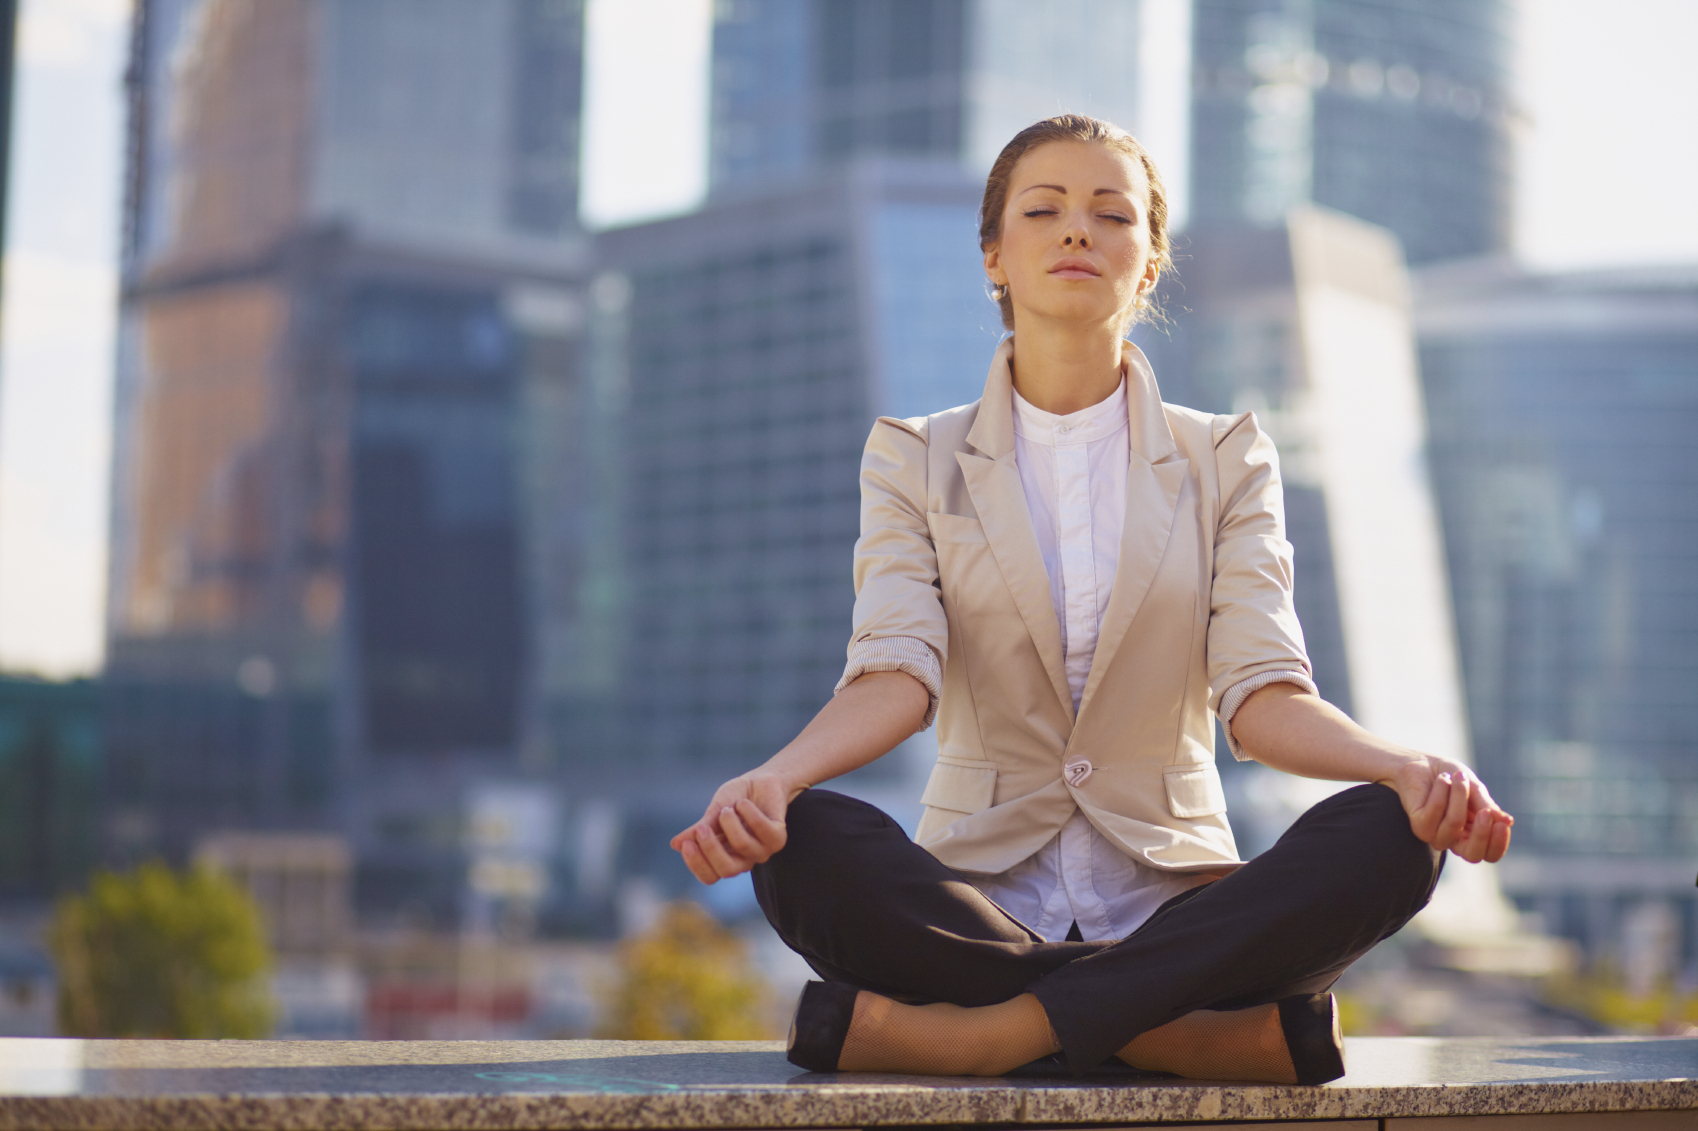 Business woman meditating outdoor over building background  [url=http://www.istockphoto.com/search/lightbox/14406610 t=_blank][img]http://azarubaika.com/iStockphoto/2012_08_26_Victoria_Business_Yoga.jpg[/img][/url]  [url=http://www.istockphoto.com/search/lightbox/14296572 t=_blank][img]http://azarubaika.com/iStockphoto/ModelVictoria.jpg[/img][/url]